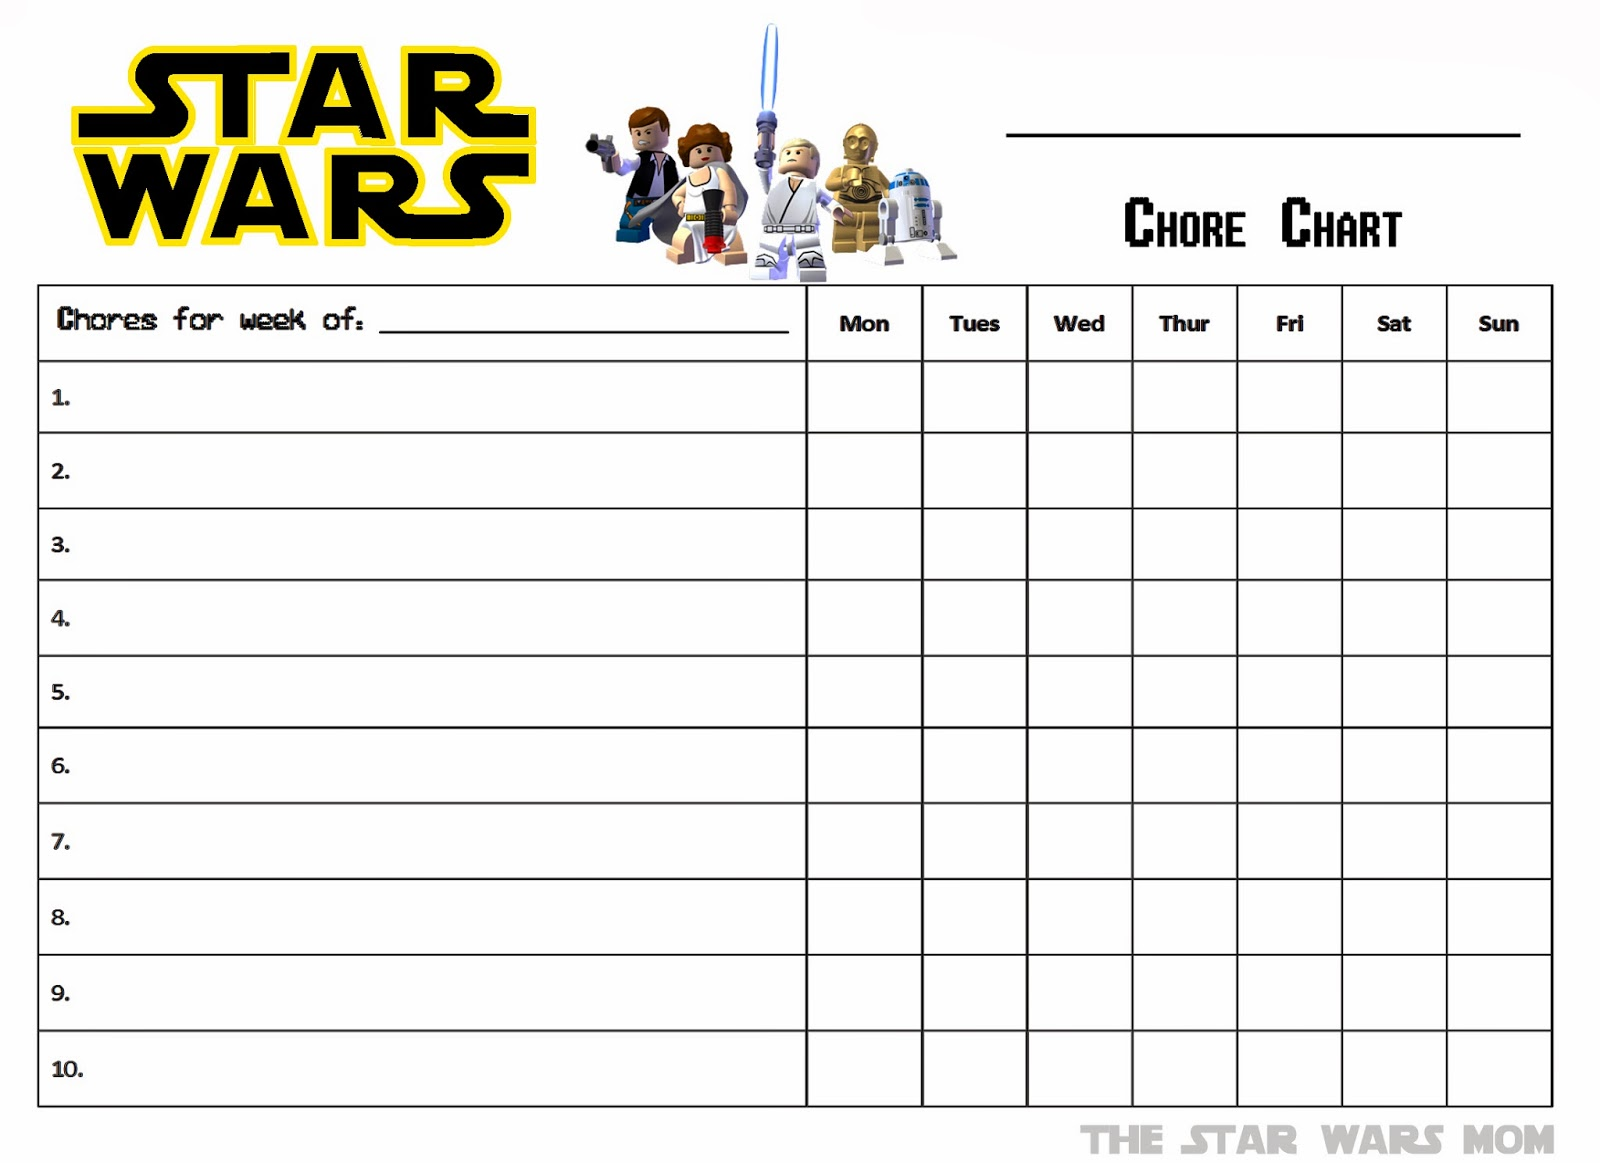 Star Wars Free Printables - The Star Wars Mom – Parties, Recipes ...